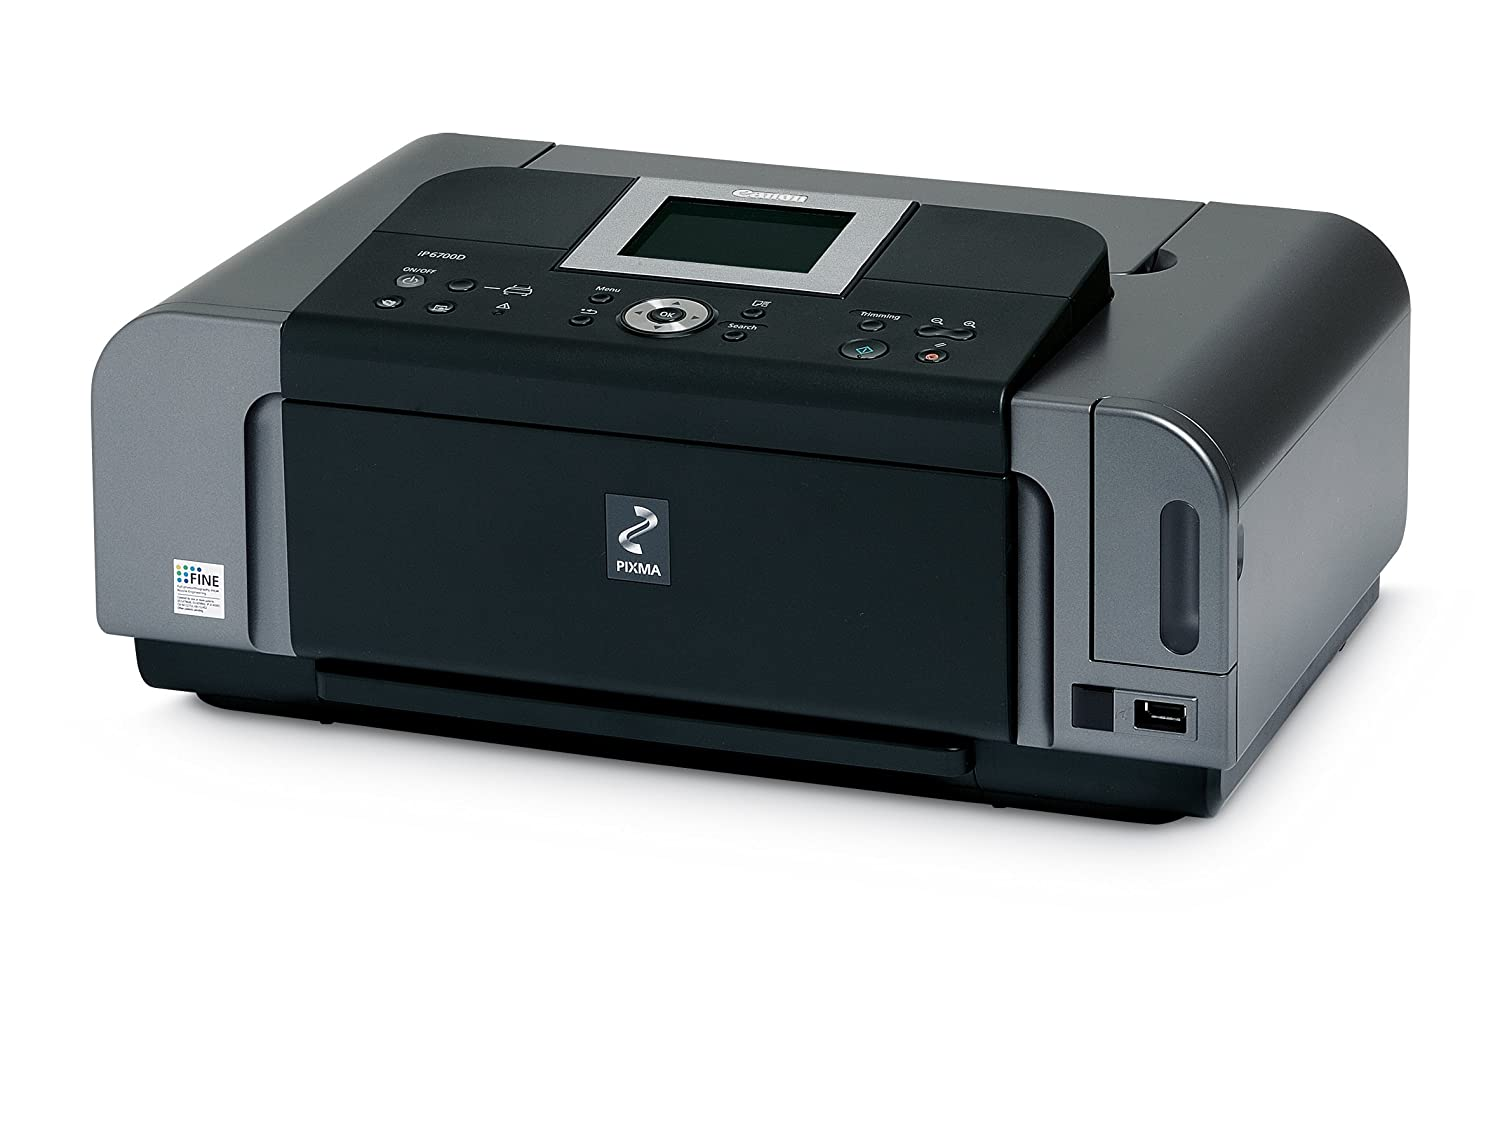 Canon iP6700D Superior Quality Direct Photo Printer with 8.9cm Colour LCD  Screen: Amazon.co.uk: Computers & Accessories